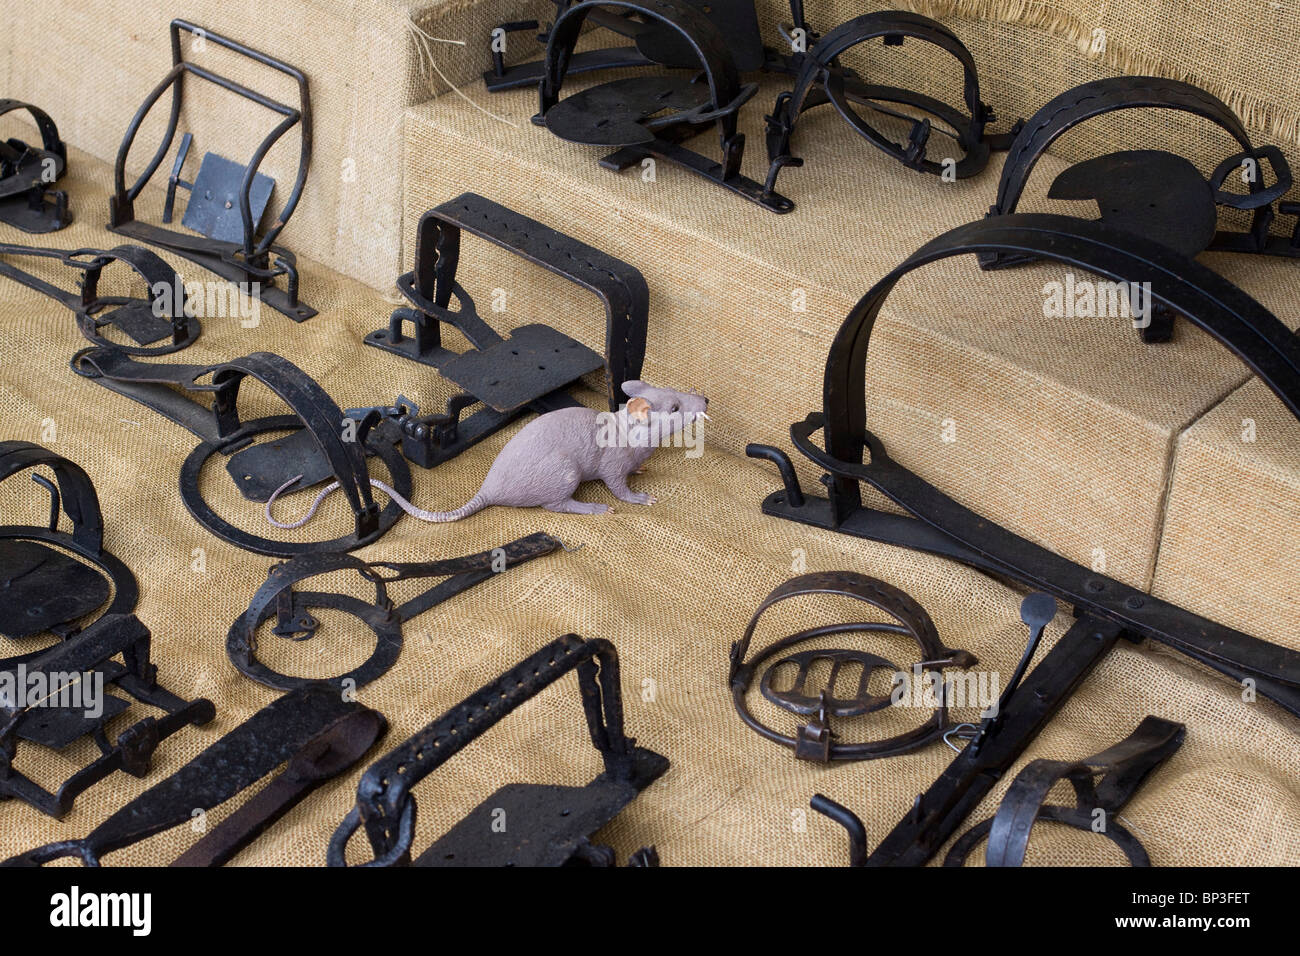 A Display of Animal Traps at a show in Cirencester - Stock Image